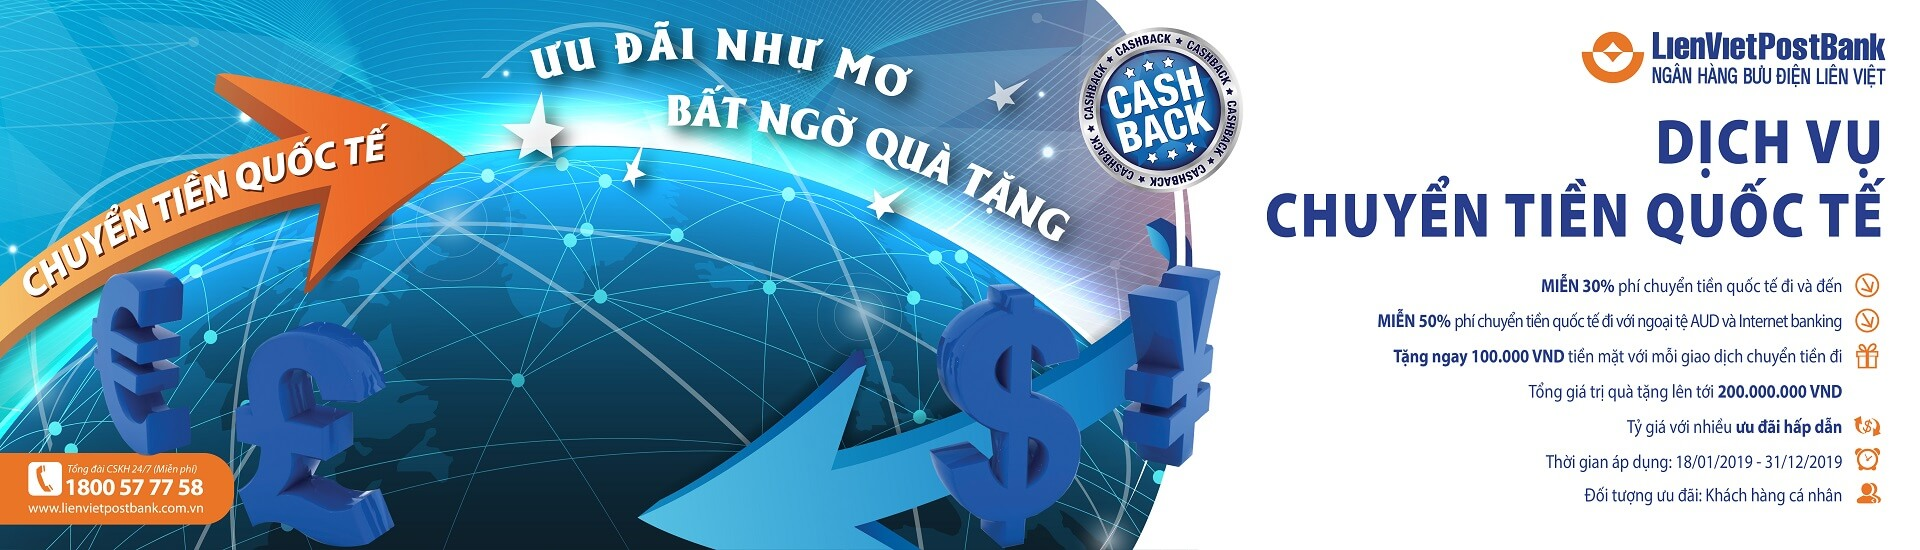 Banner thanh toan quoc te